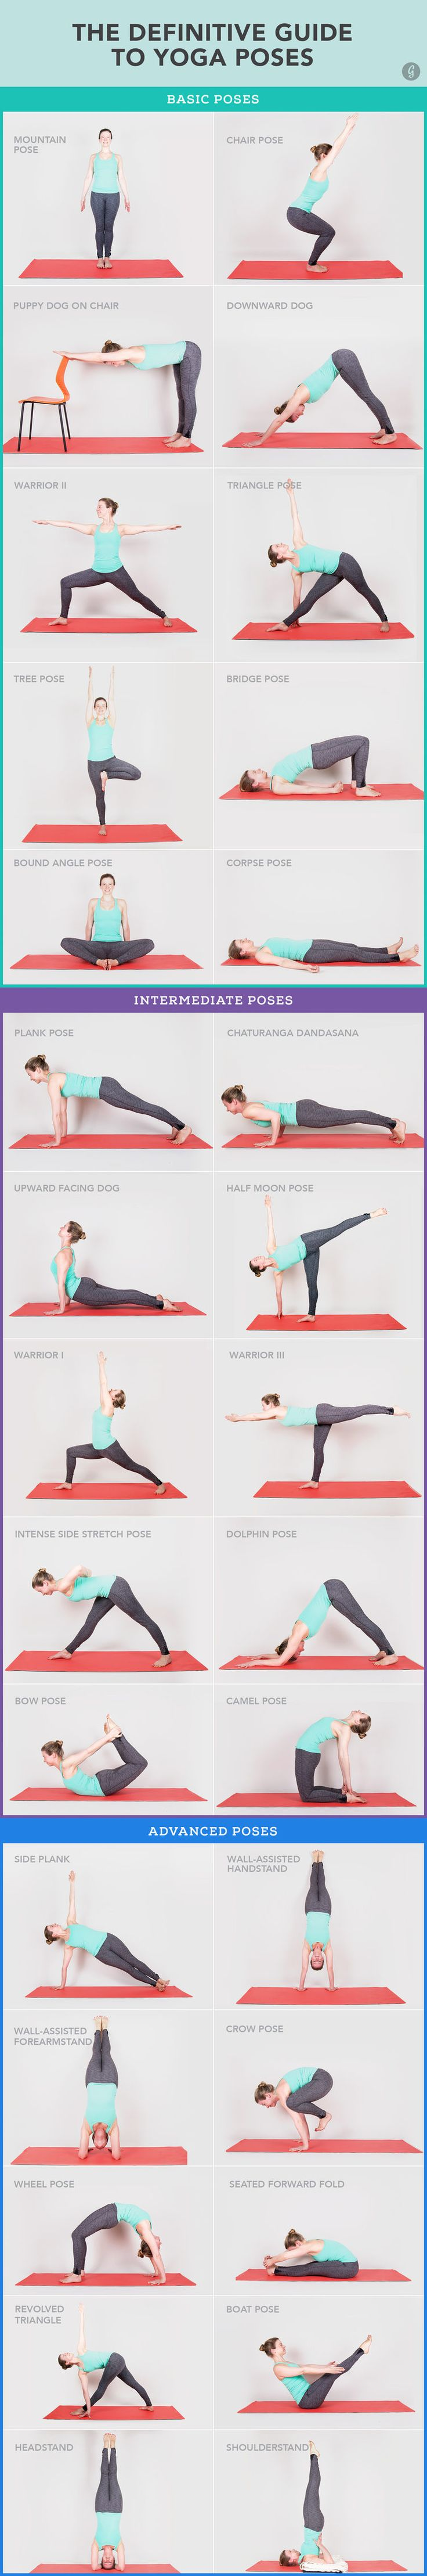 Consider this your cheat sheet to mastering the common poses you're likely to flow through in vinyasa class. http://greatist.com/move/common-yoga-poses